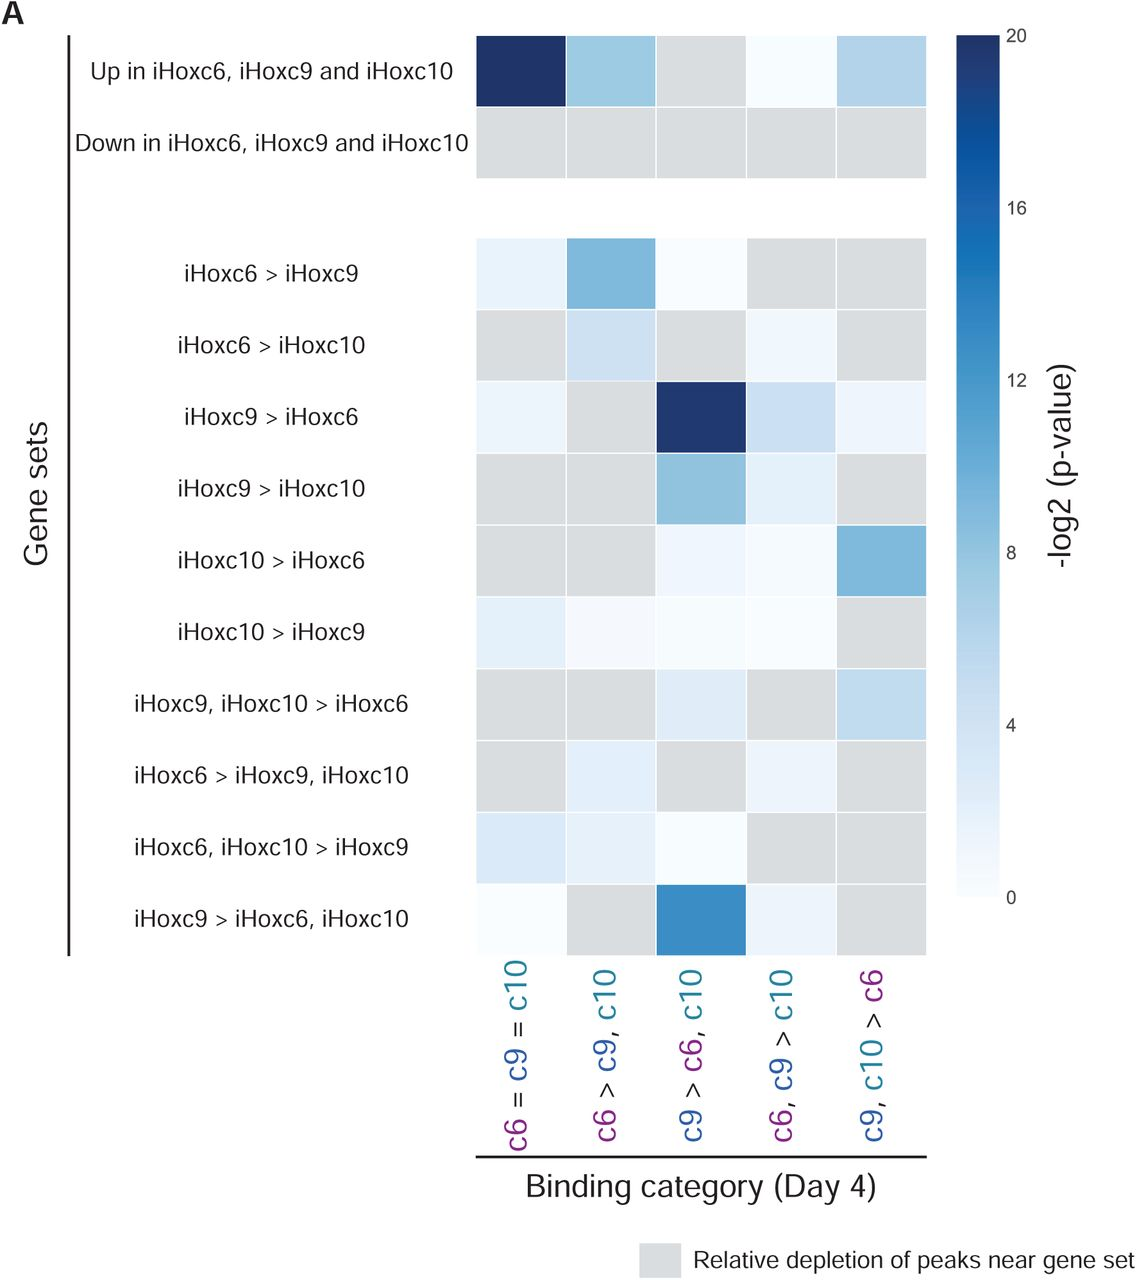 "Hoxc9 and <t>Hoxc13</t> genome-wide binding profiles differ from other posterior Hox TFs. (A) ChIP-seq heatmap showing binding comparisons of Hoxc9 and Hoxc13 in differentiating MNs, at Day 3. Sites bound by both indicated Hox TFs noted as ""c9 = c13"" sites. Preferentially bound sites by Hoxc9 or Hoxc13 noted as ""c9 > c13"" or ""c13 > c9"". (B-C) Principal Component Analysis (PCA) of the ChIP-seq datasets reveals similarities in the binding patterns of Hox TFs."